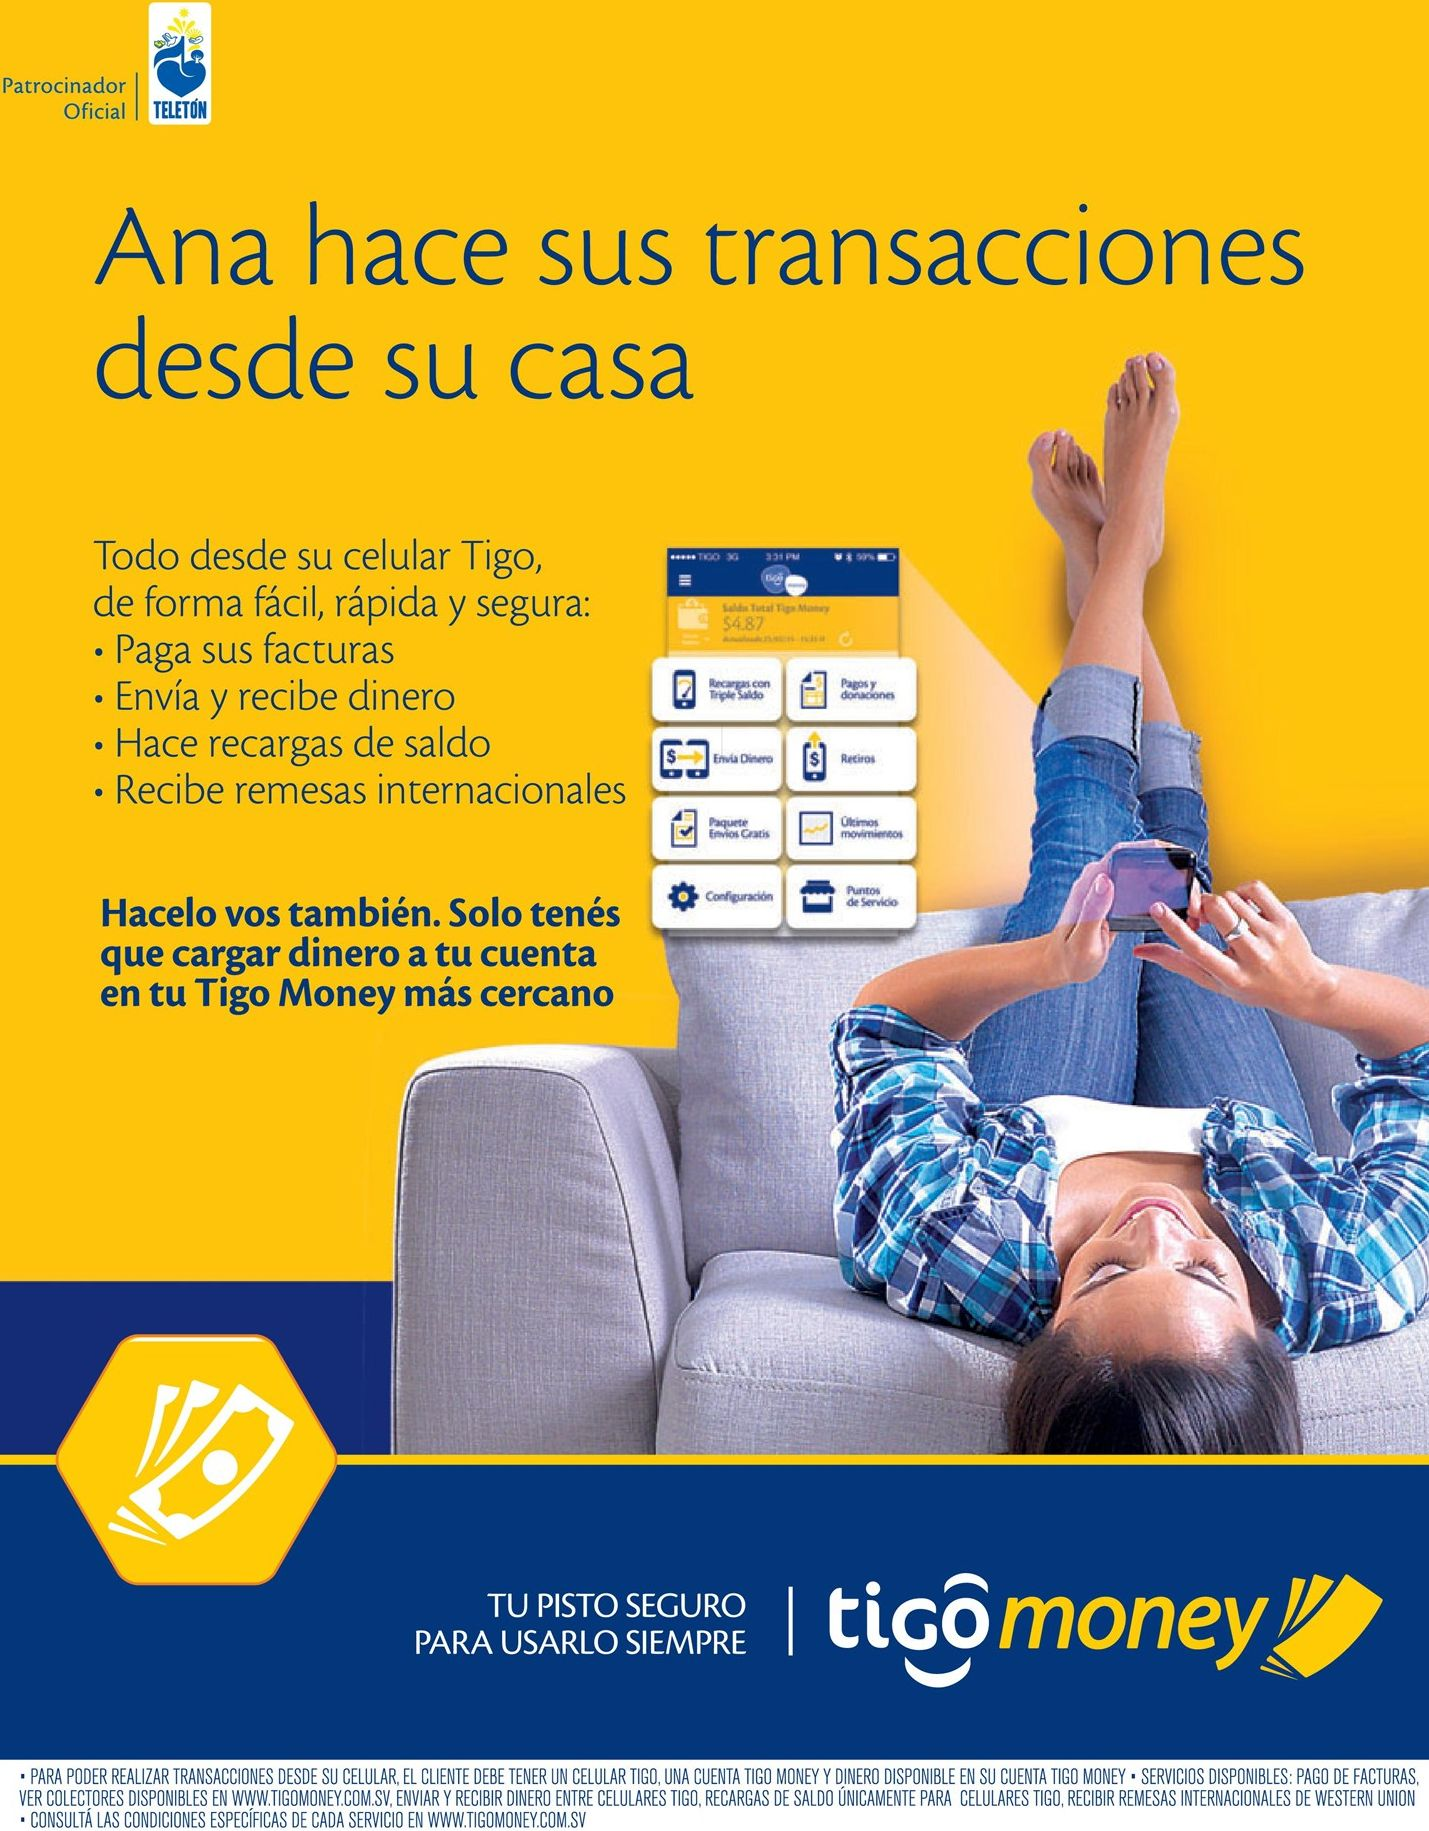 Electronic pays from your home and smartphone TIGO MONEY